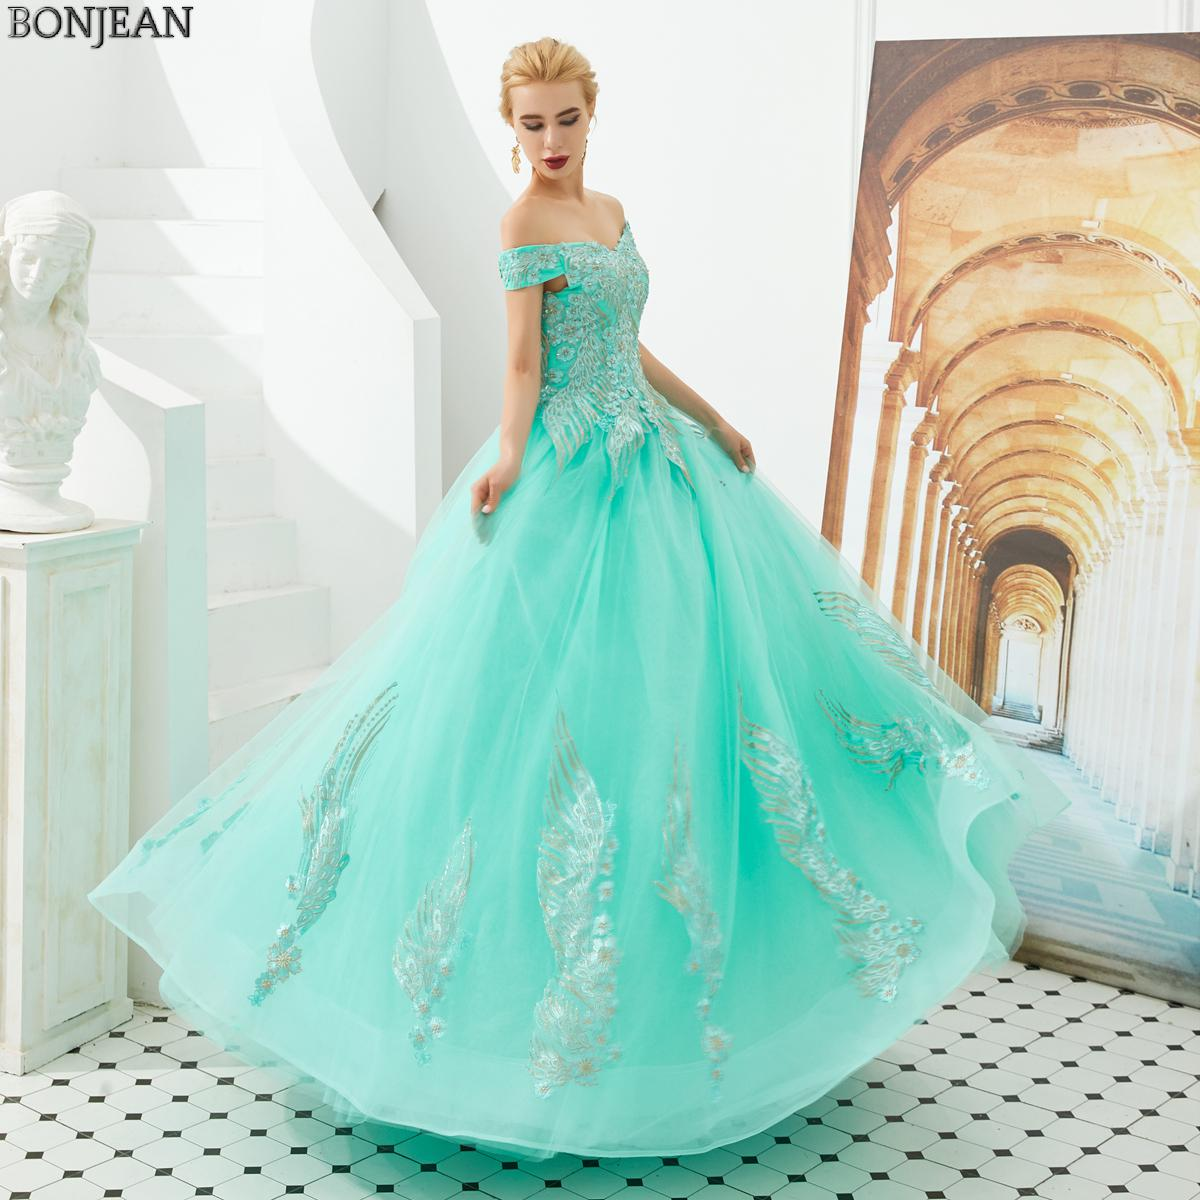 US $138.6 30% OFF|Turquoise Ball Gown Prom Dresses Appliqued Lace Off The  Shoulder Plus Size Puffy Prom Dress Plus Size Formal Dress Women Elegant-in  ...